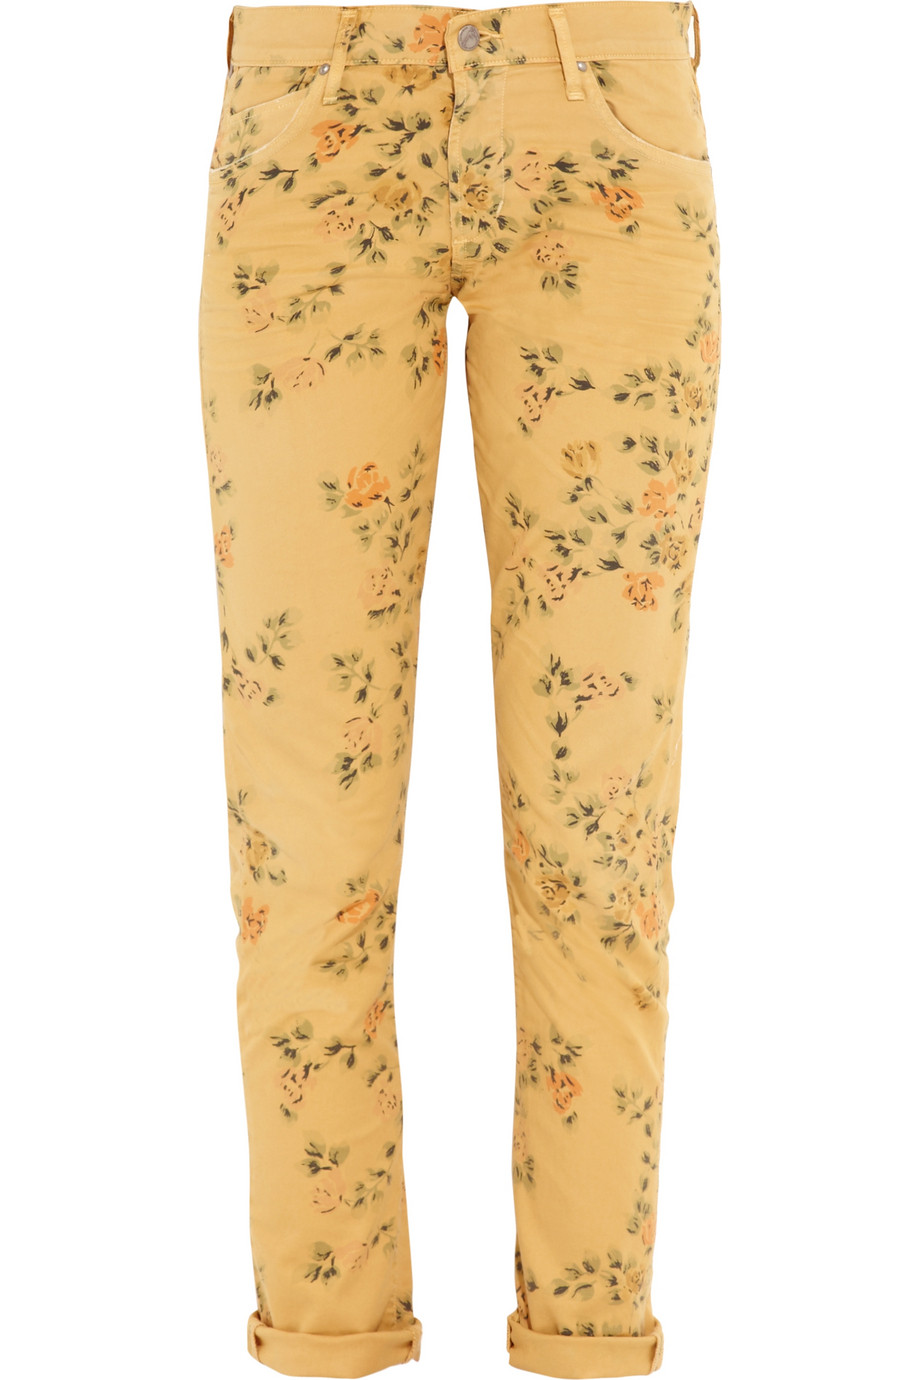 citizens of humanity mandy floralprint highrise skinny jeans in yellow floral lyst. Black Bedroom Furniture Sets. Home Design Ideas